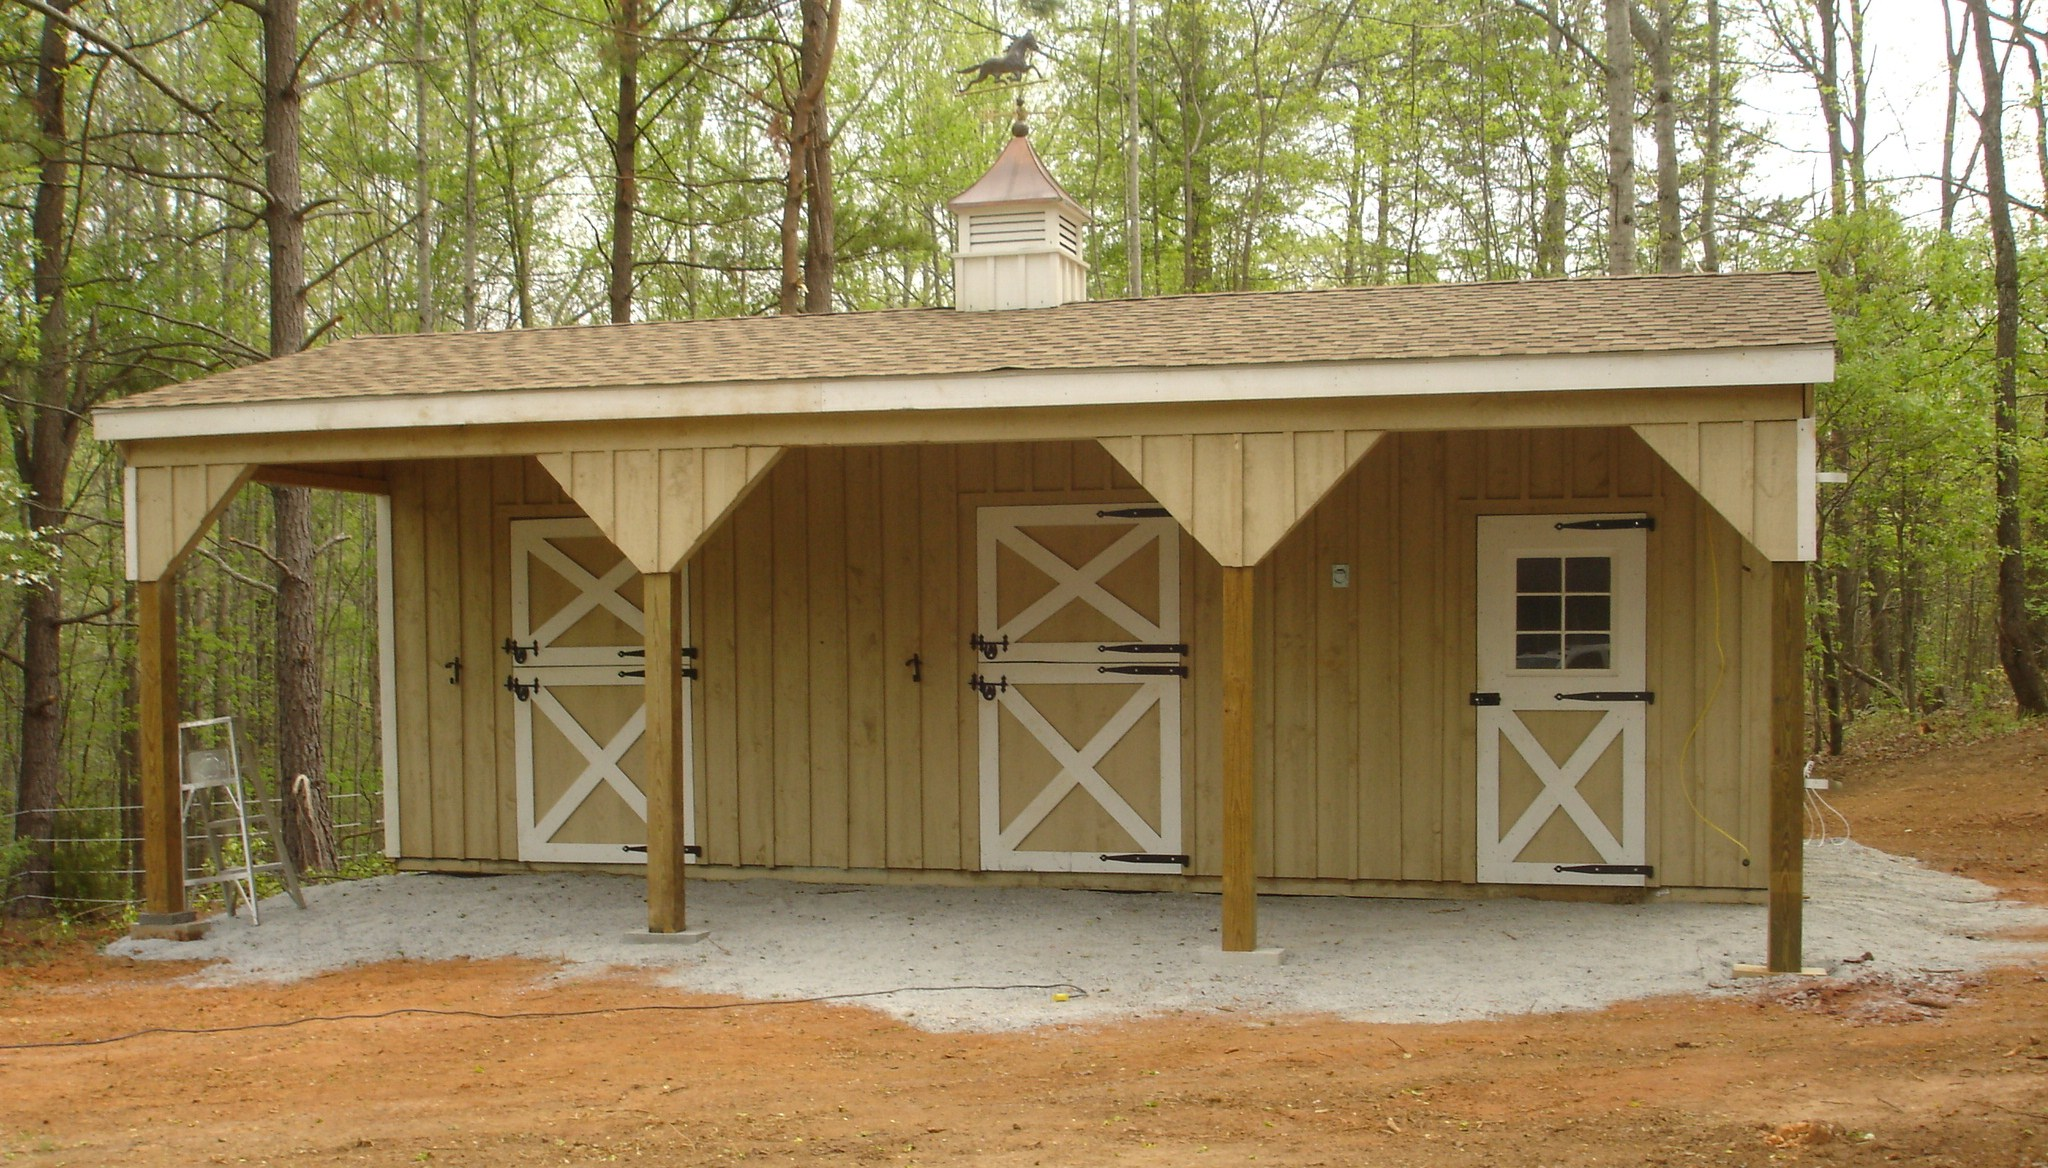 Shed Row Horse Barn With Lean To 2